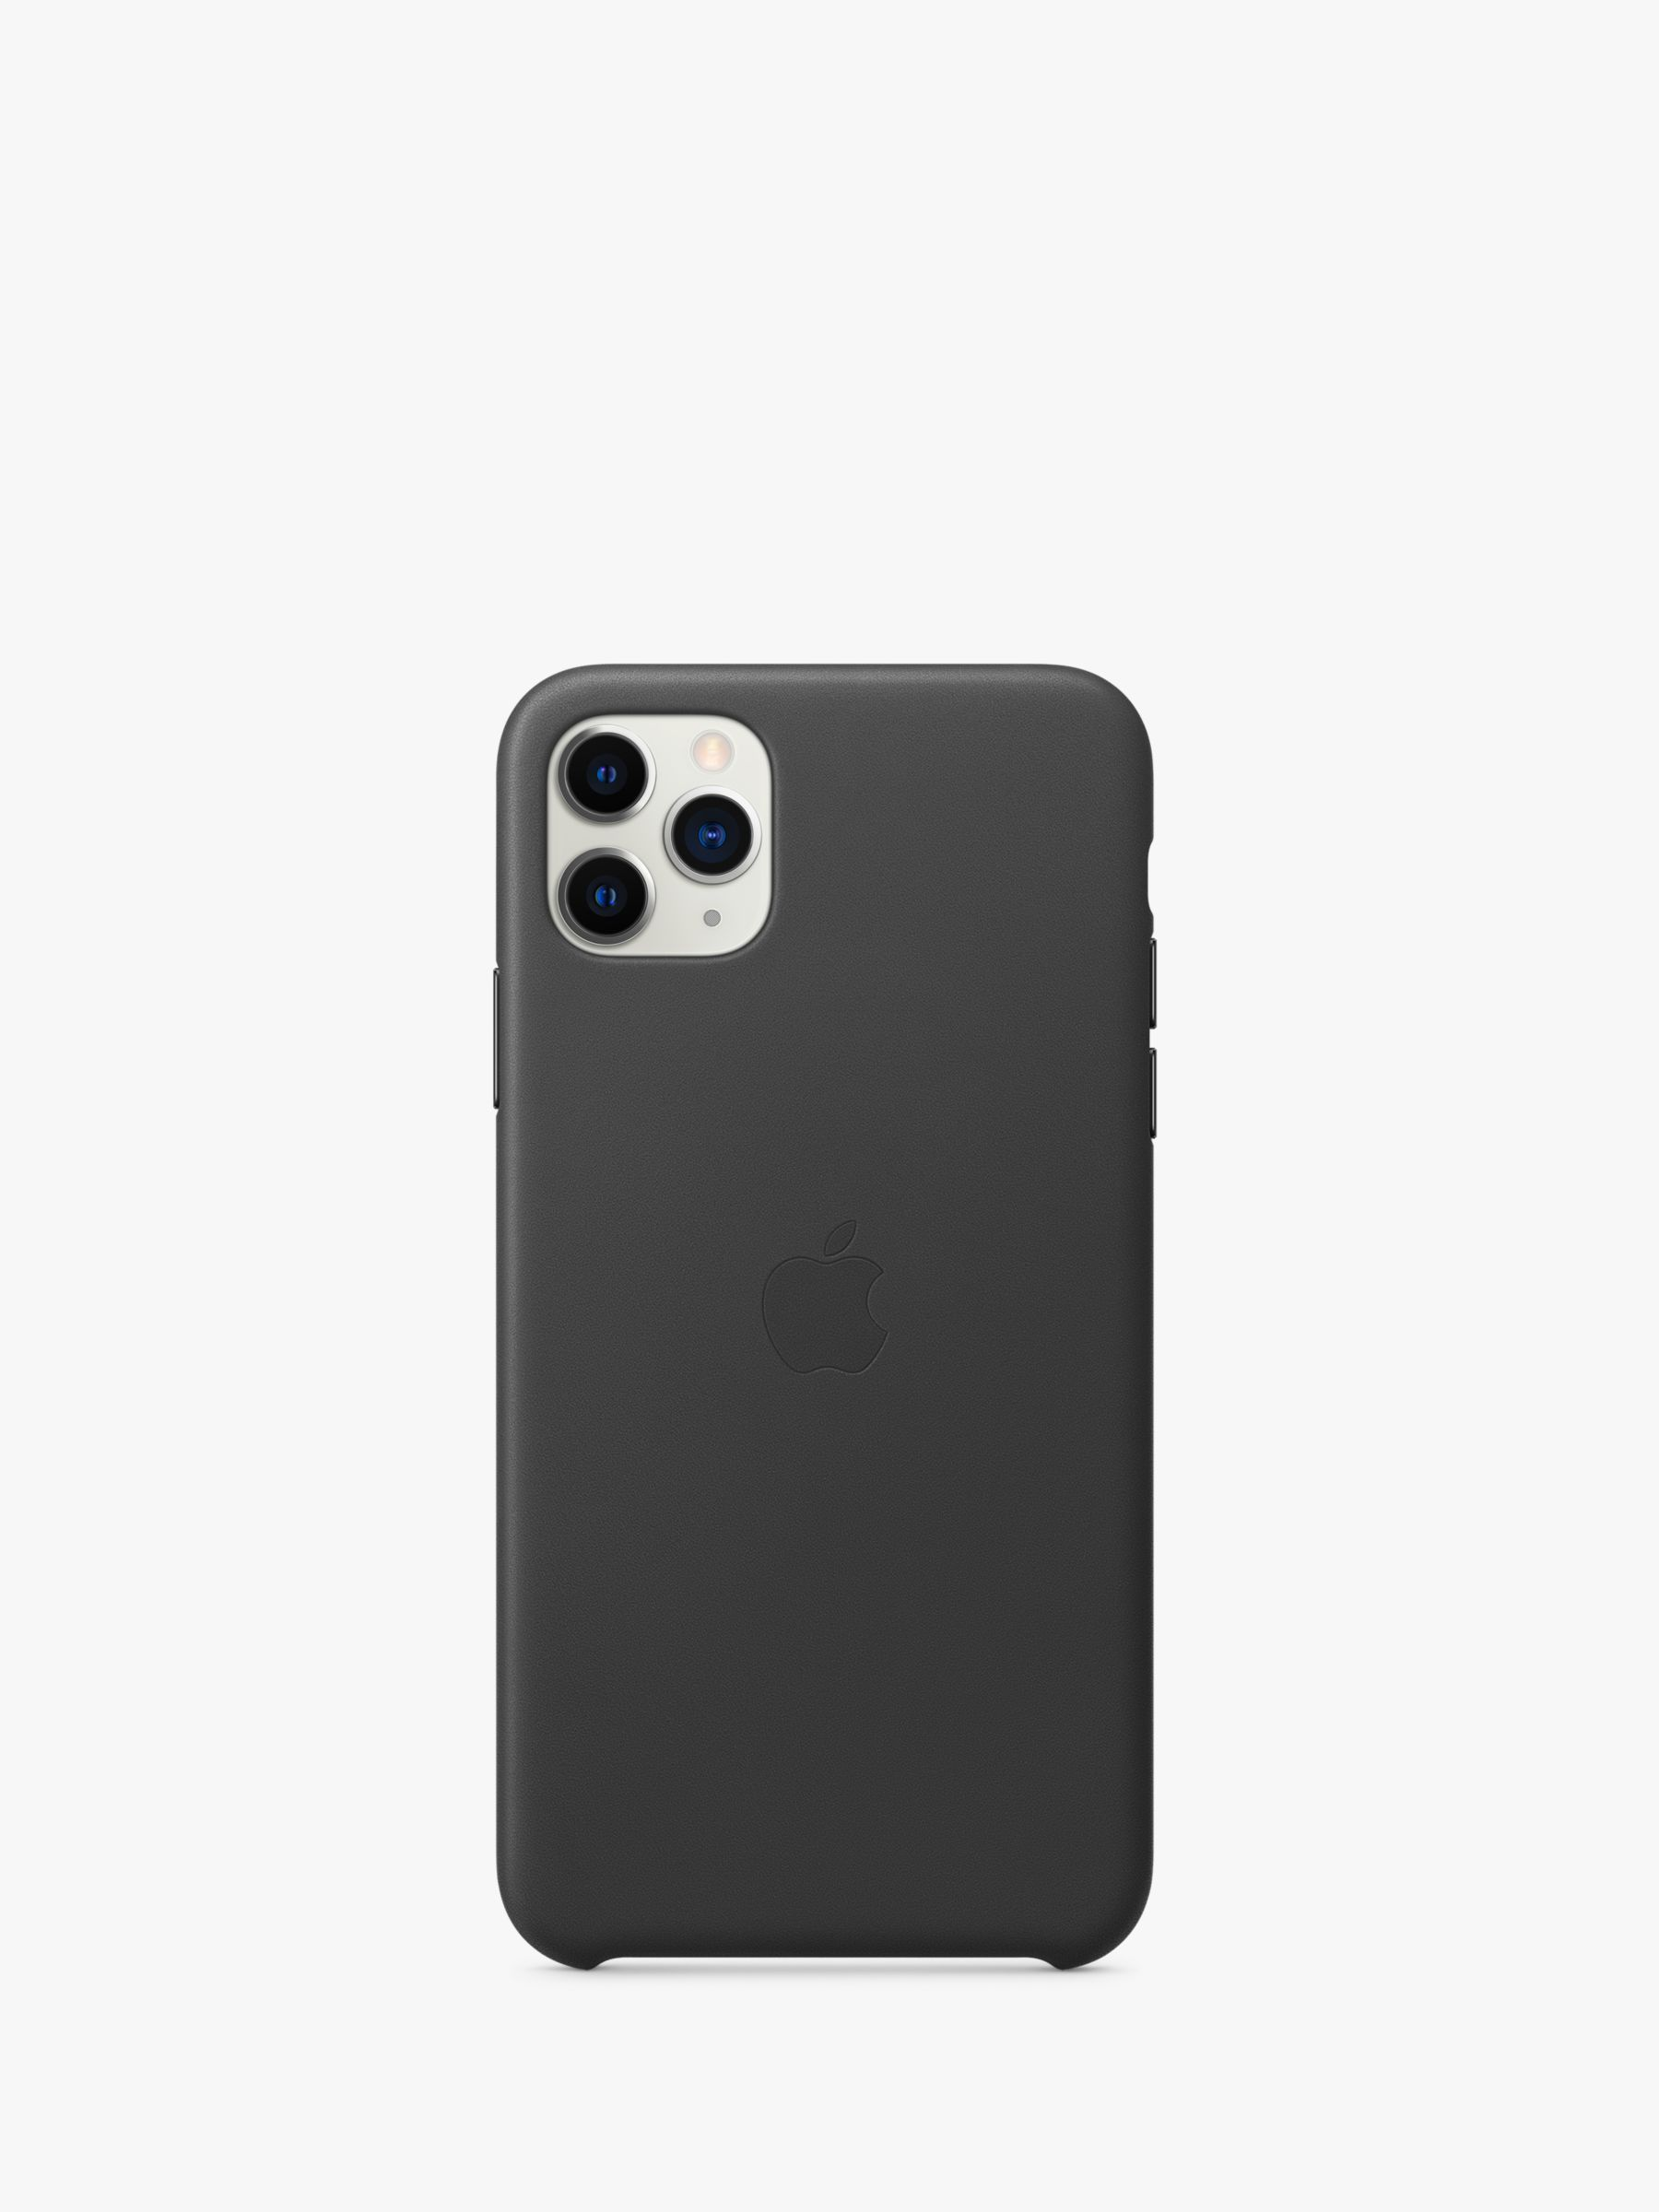 Apple leather case for iphone 11 pro max in 2020